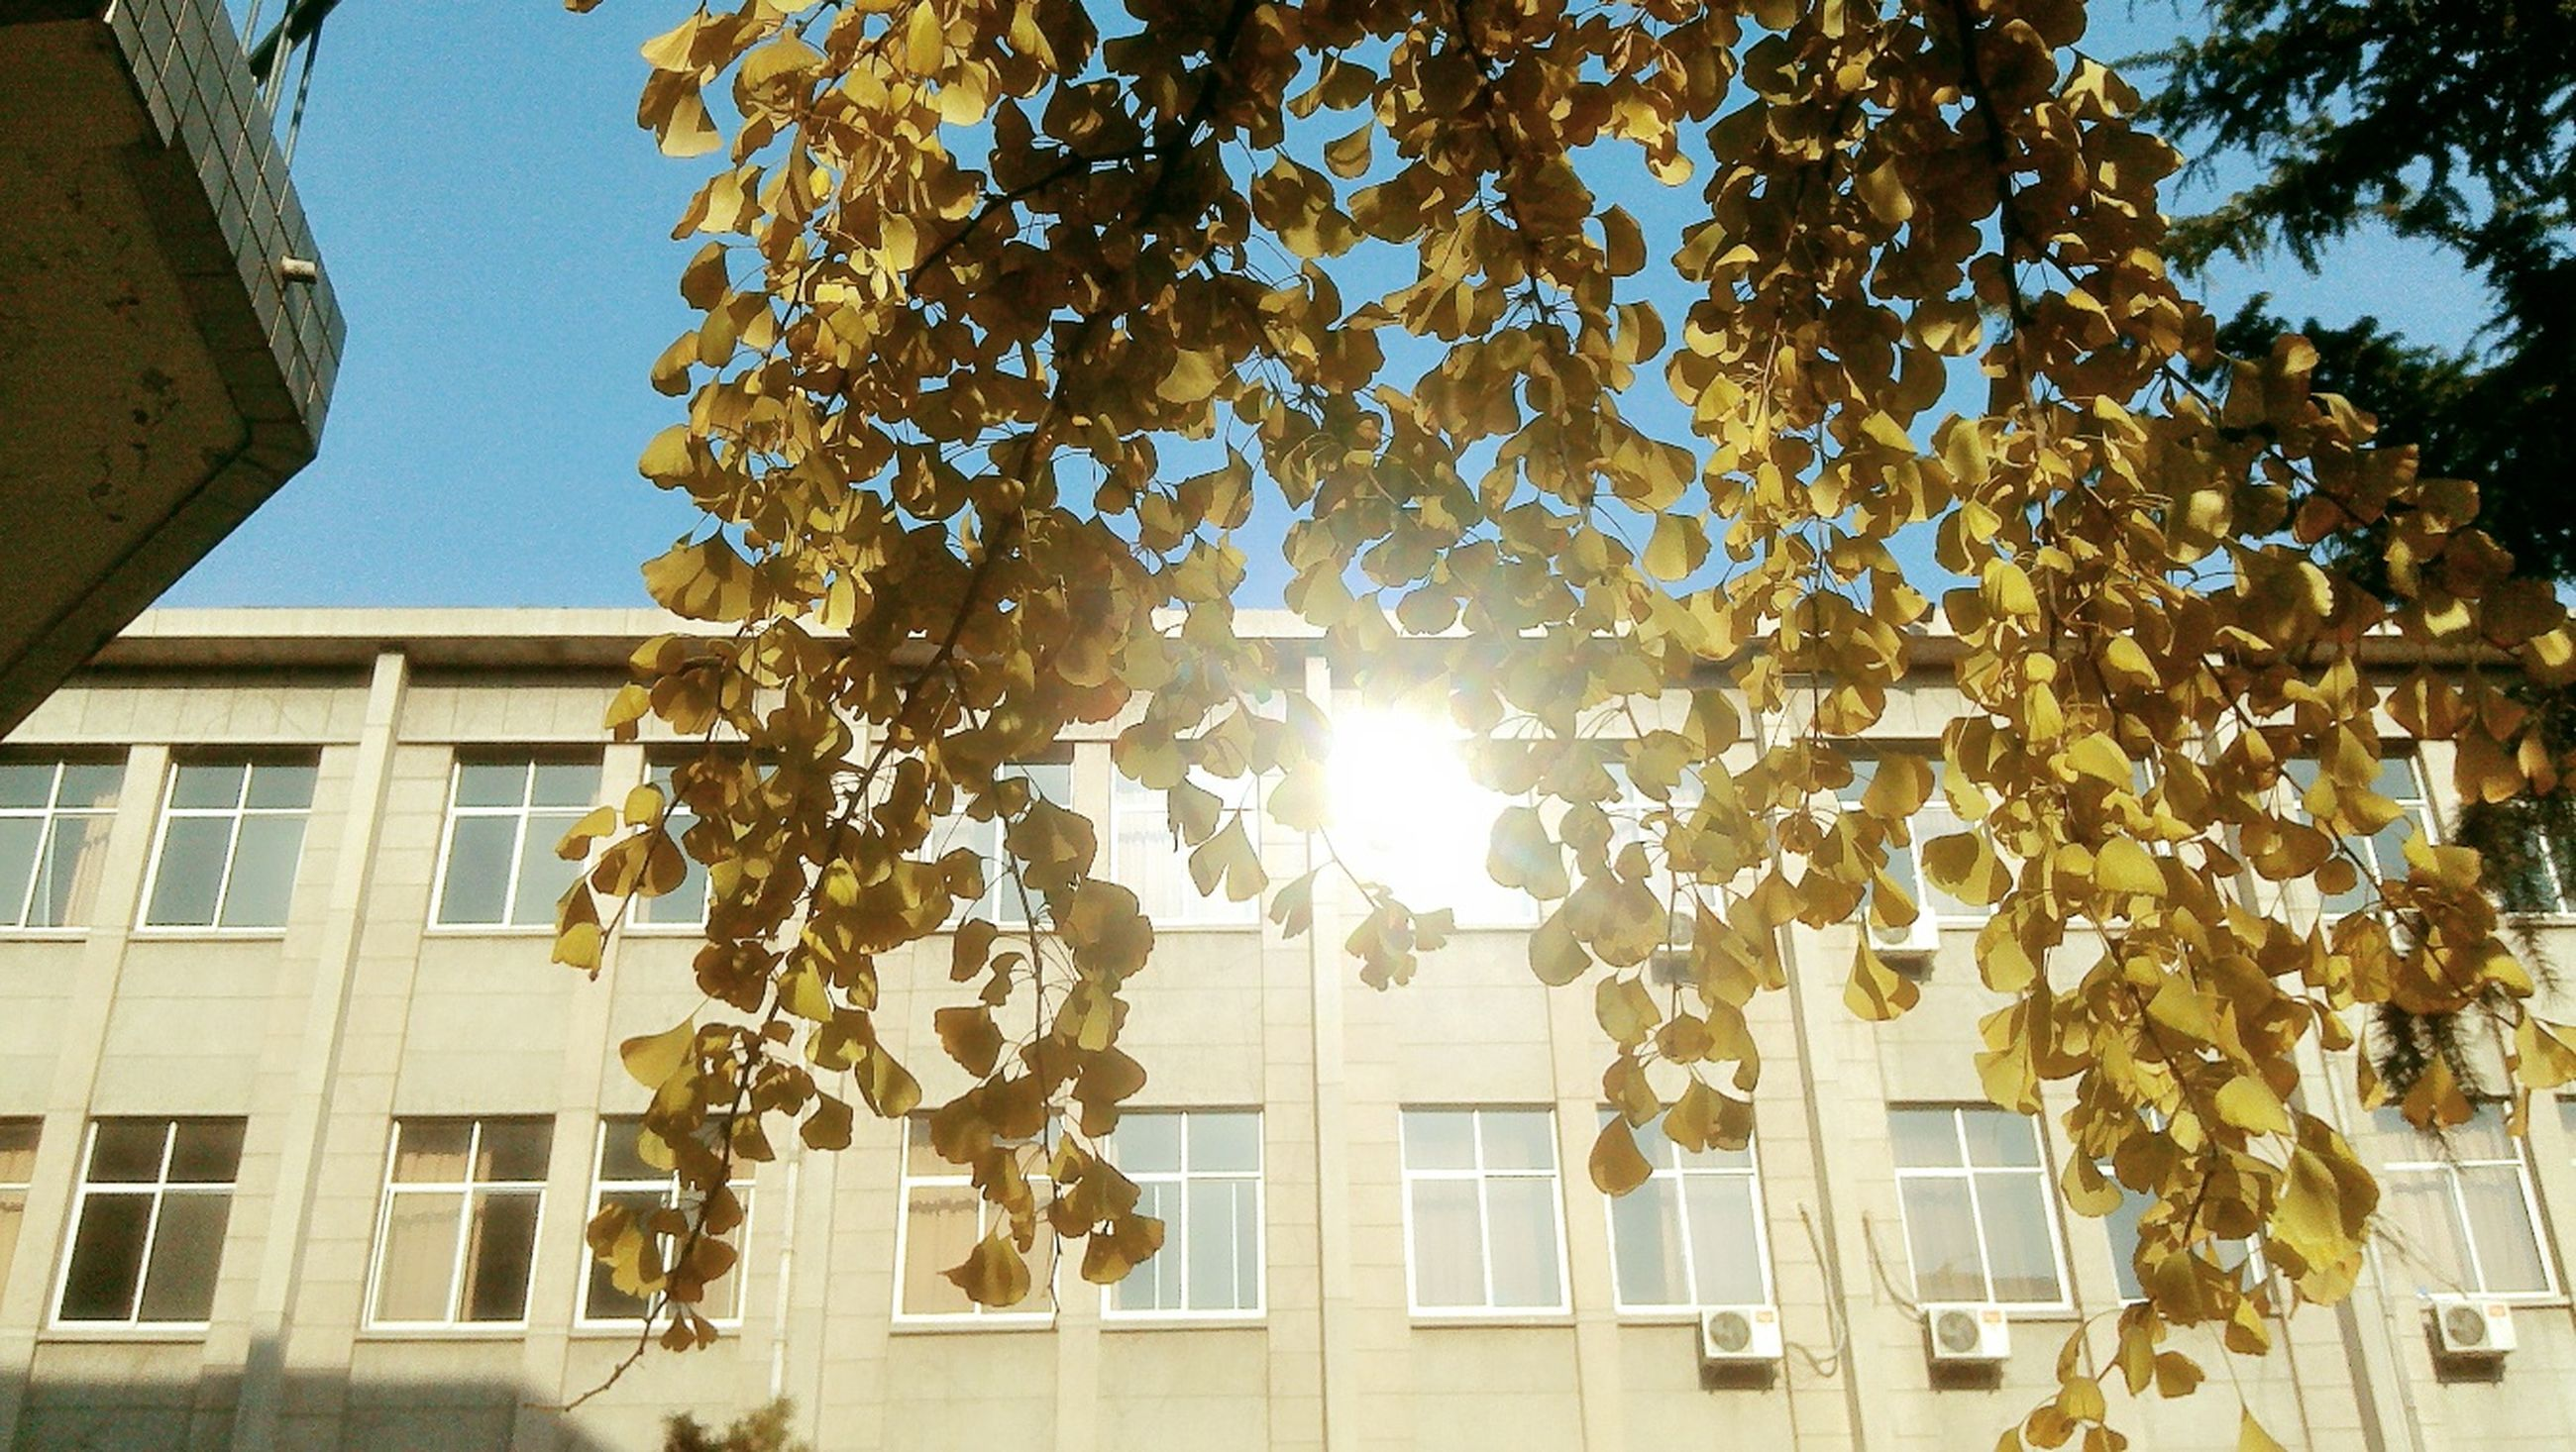 building exterior, architecture, built structure, window, tree, low angle view, residential building, sunlight, residential structure, building, growth, glass - material, balcony, city, clear sky, house, sky, branch, day, no people